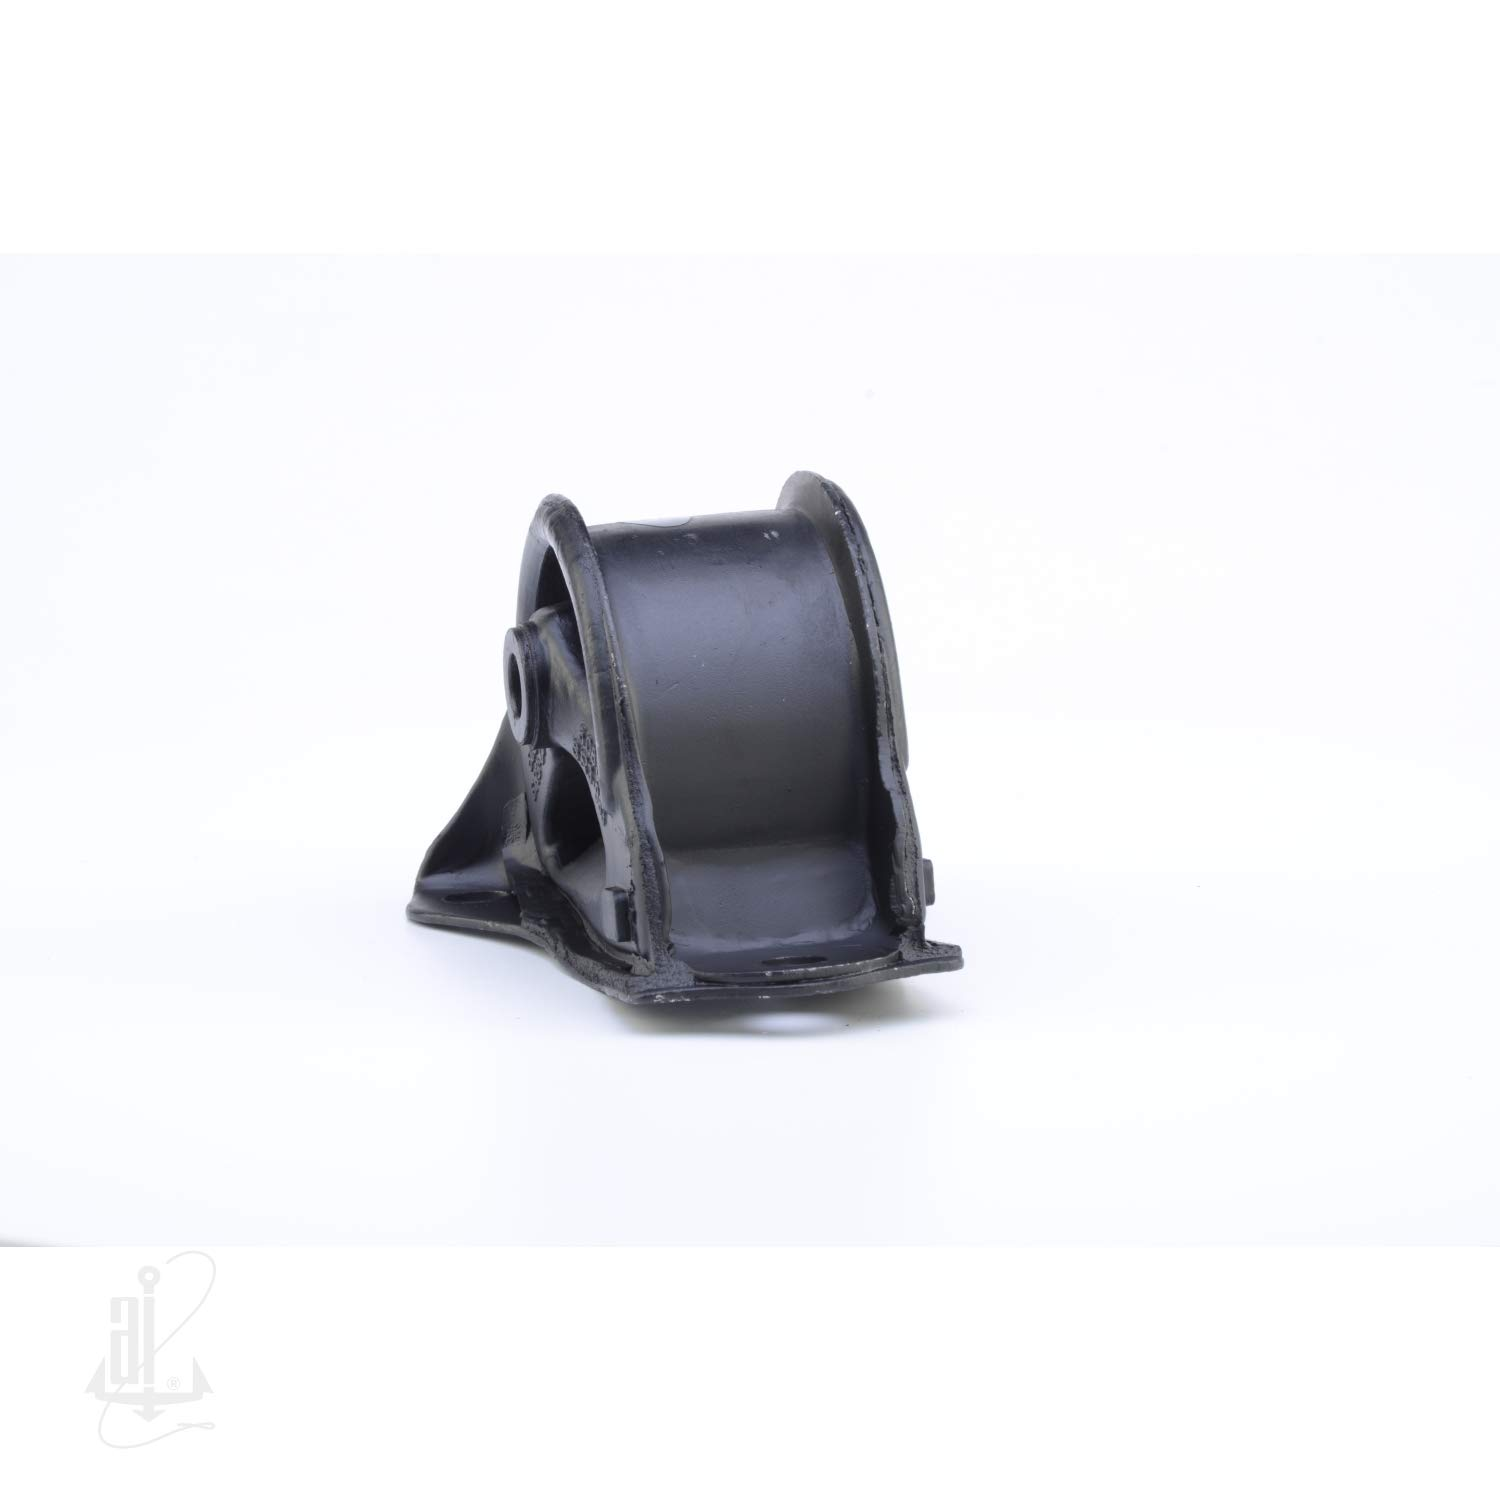 Anchor 8897 Rear Mount